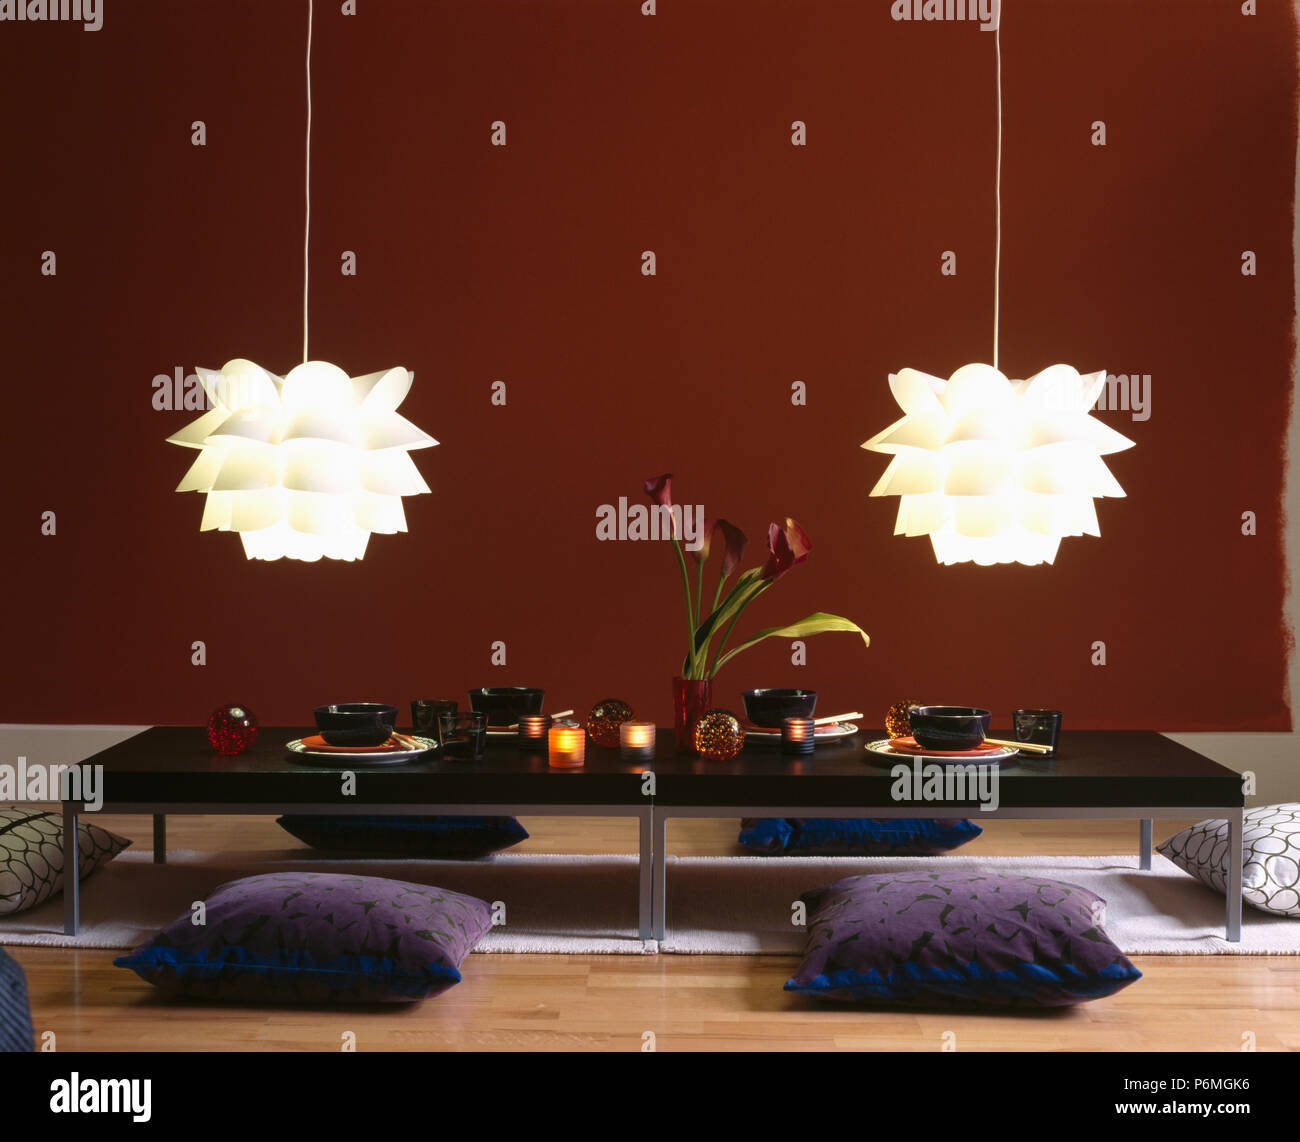 White Folded Plastic Ceiling Lights Above Grey Floor Cushions And Low Table Set For A Chinese Meal In Modern Dining Room Stock Photo Alamy